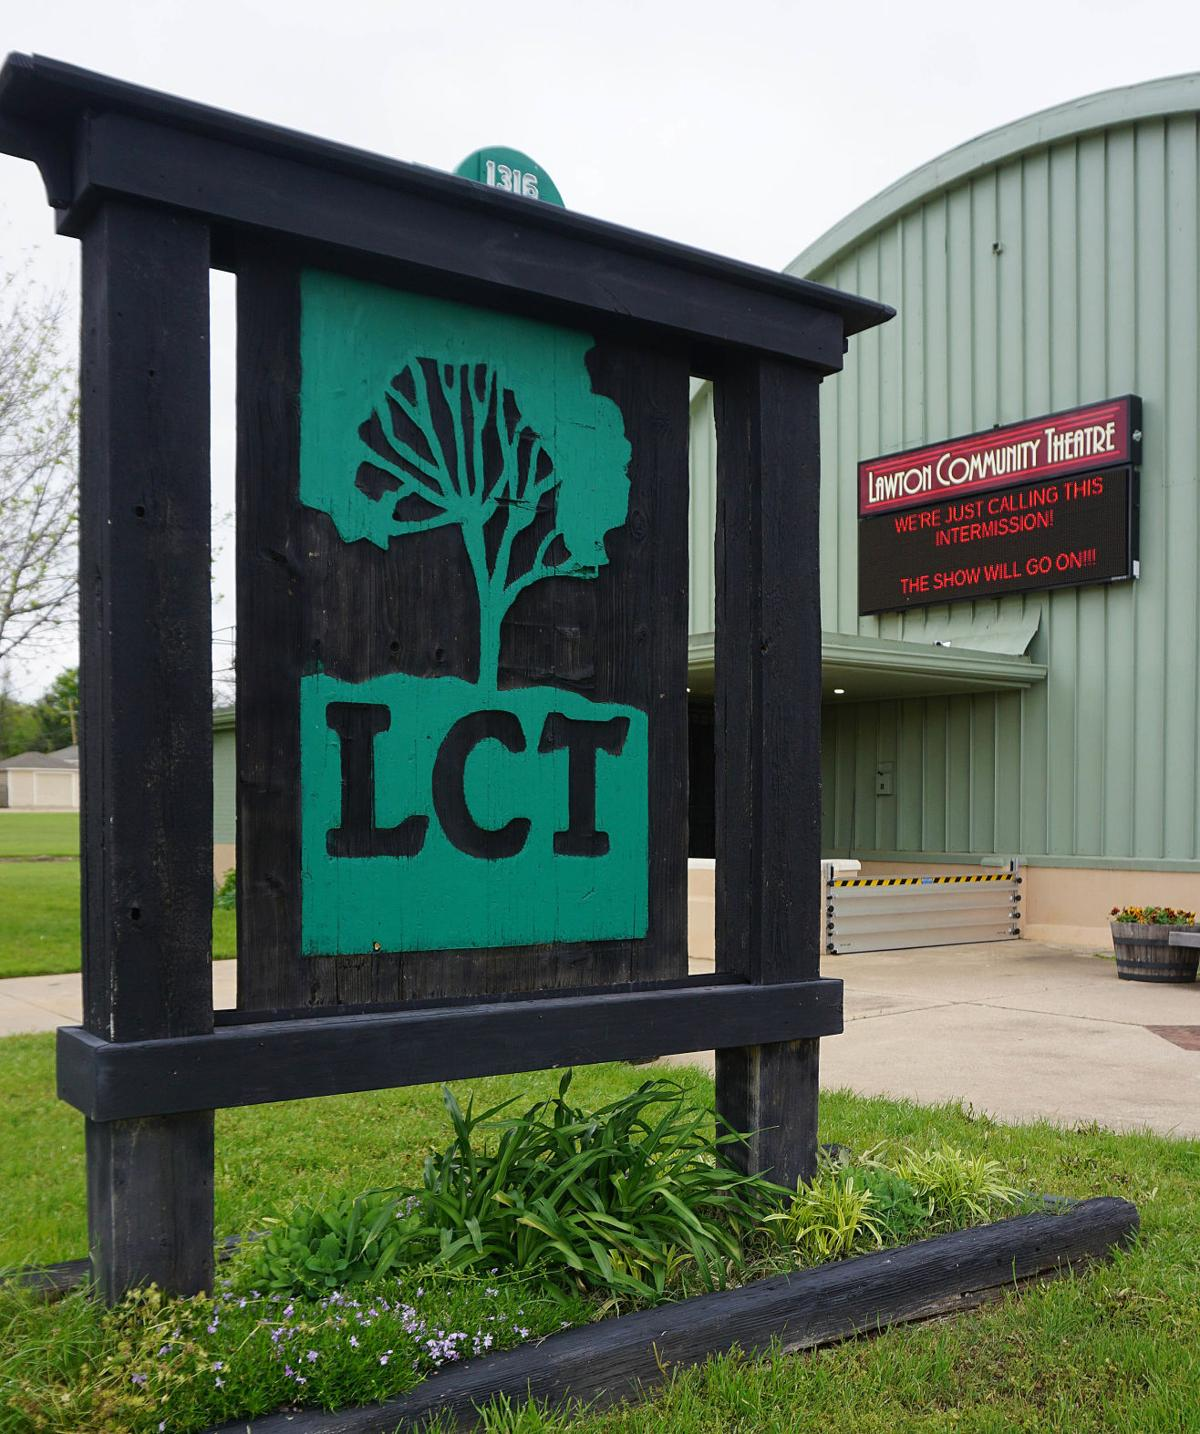 Lawton Community Theatre closed its doors to the public during the pandemic